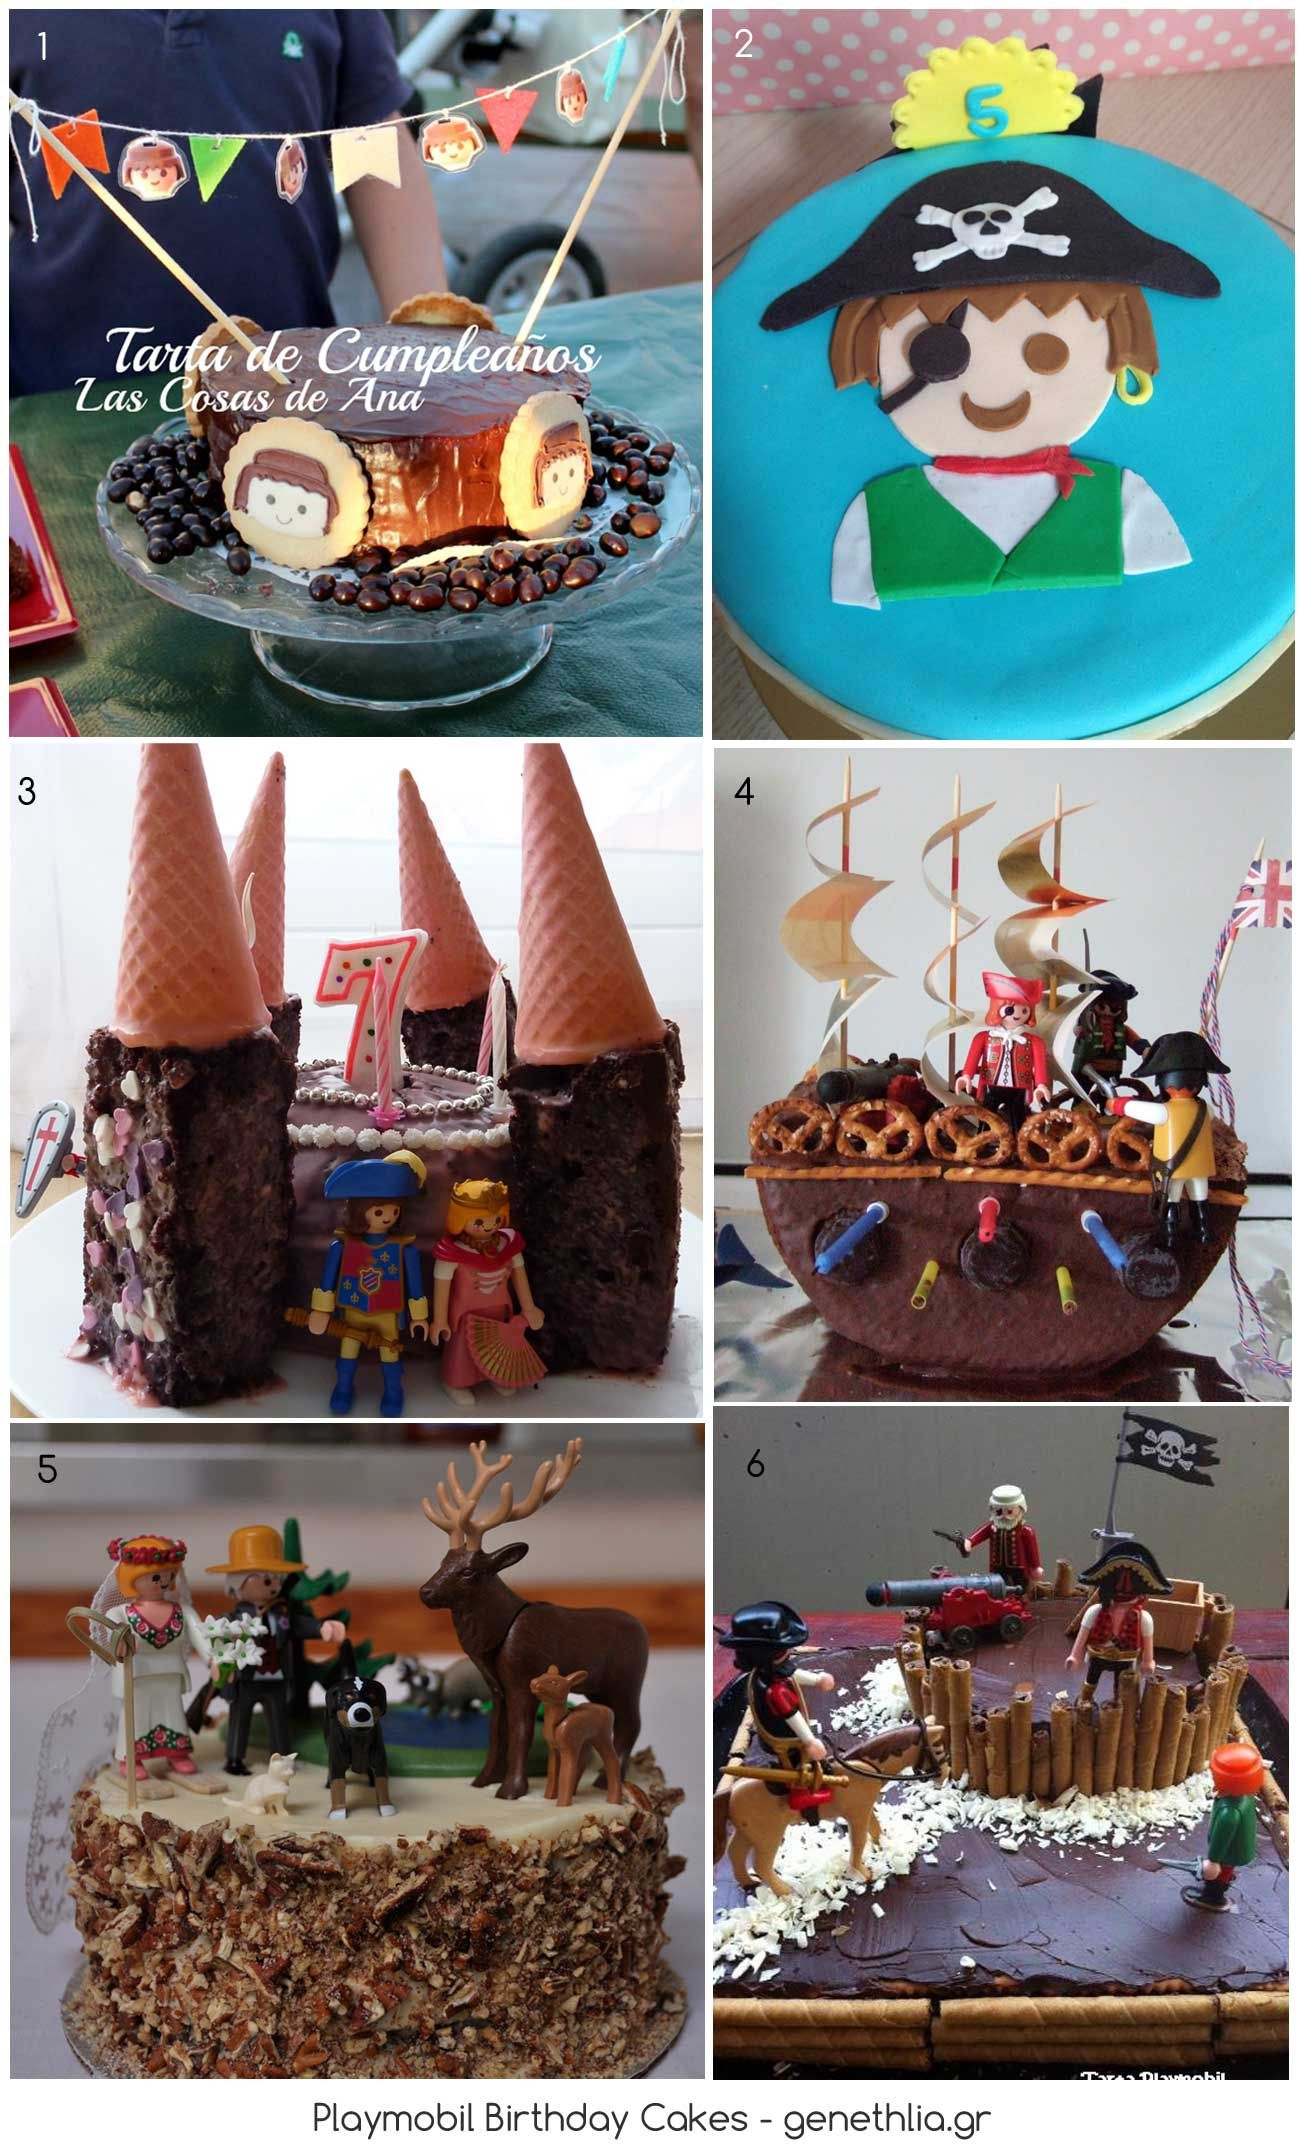 playmobil cakes pinterest kindergeburtstag feiern geburtstagskuchen und bastelei. Black Bedroom Furniture Sets. Home Design Ideas